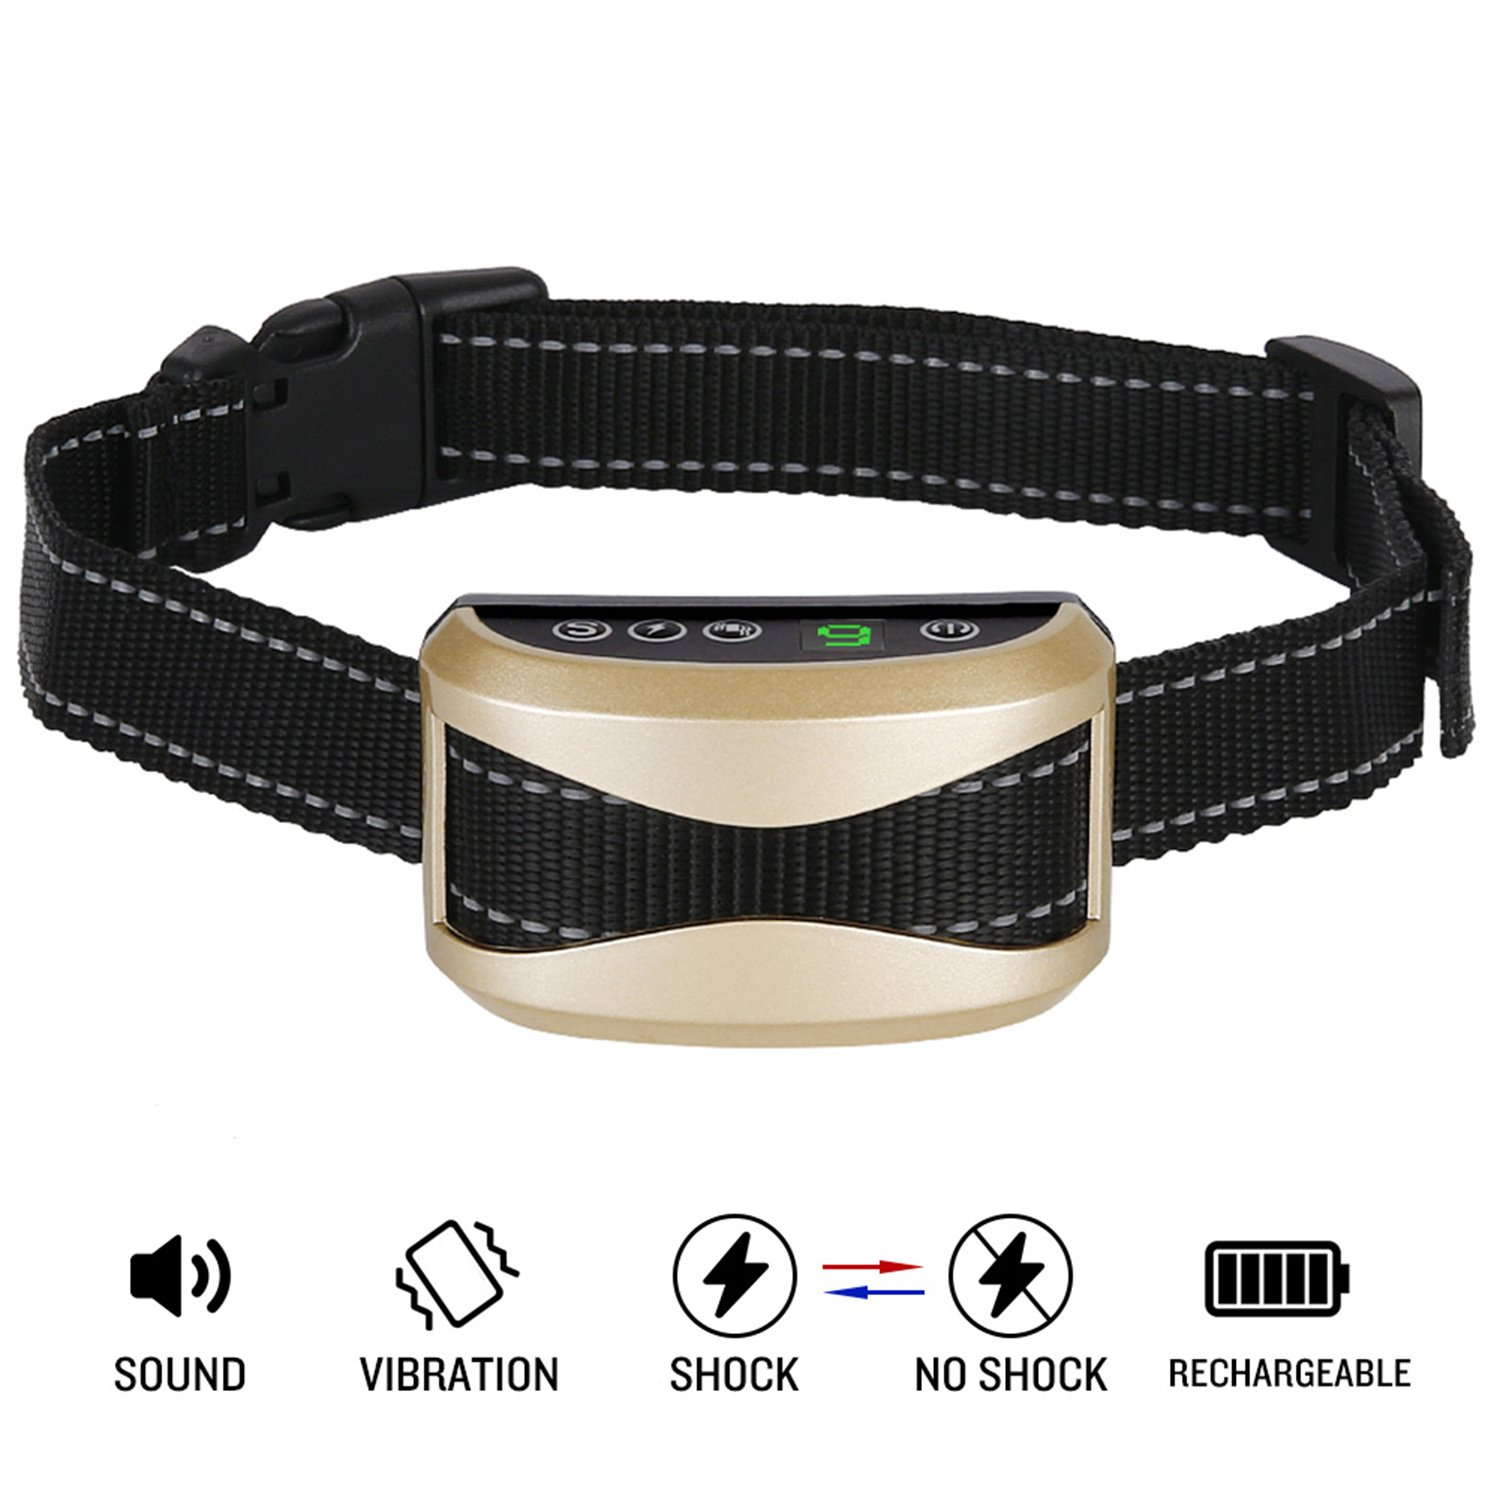 Casfuy Bark Collar Upgrade 7 Sensitivity Rechargeable Humane Dog No Bark Collar with Vibration and No Harm Shock for Small Medium Large Dog